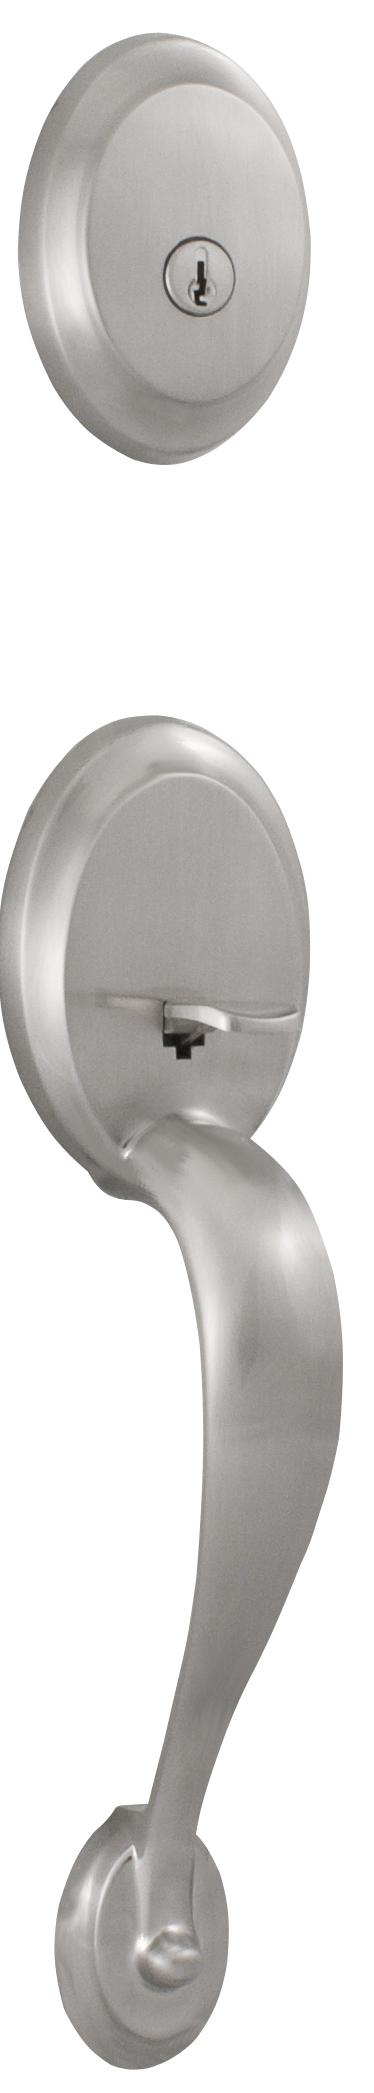 Weslock 00351 Traditionale Oval Series Single Cylinder Entry Handleset